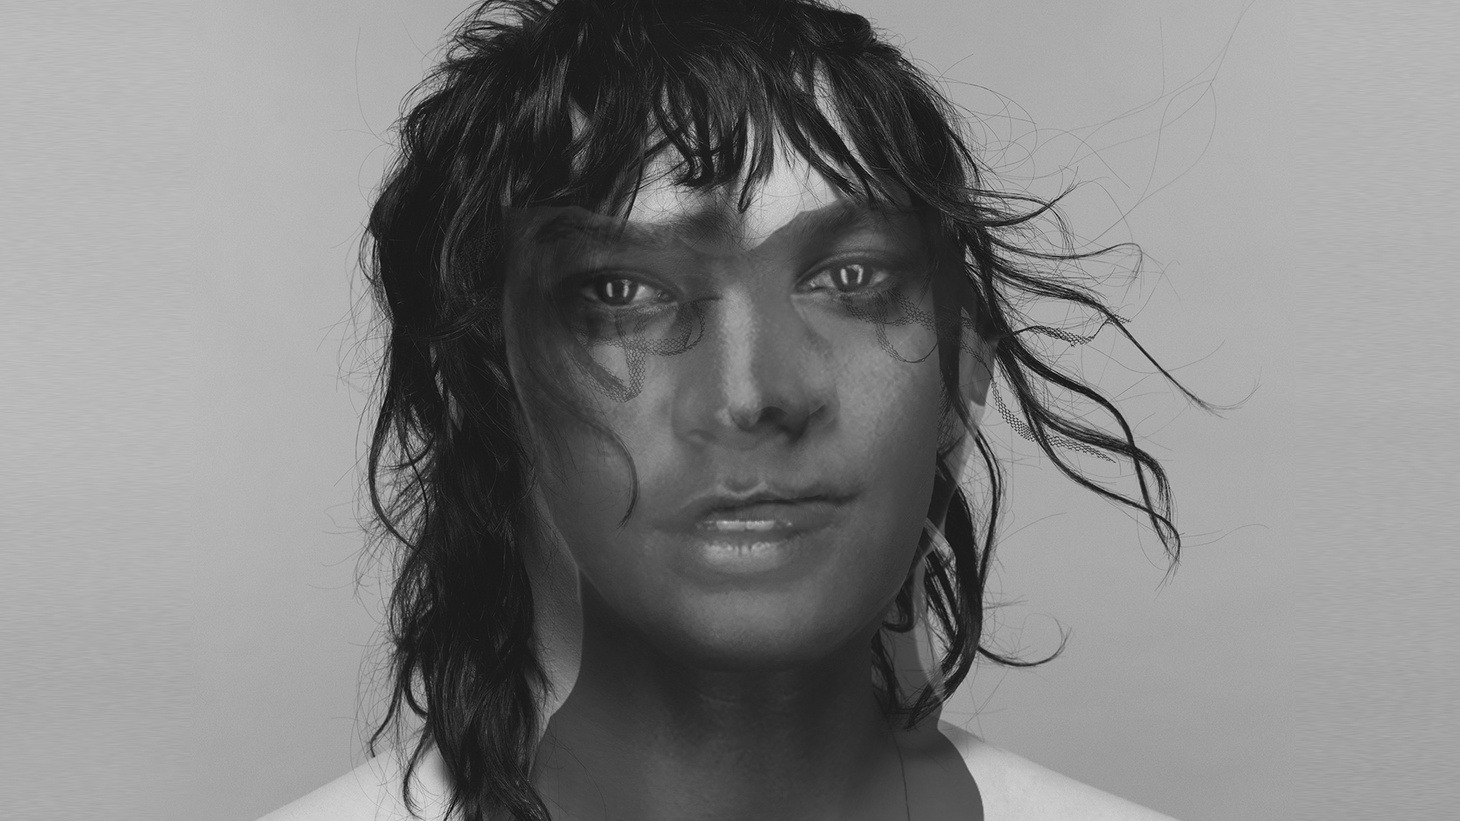 Lead singer Antony Hegarty of Antony and the Johnsons collaborated with Hudson Mohawke and Oneohtorix Point as Anohni.